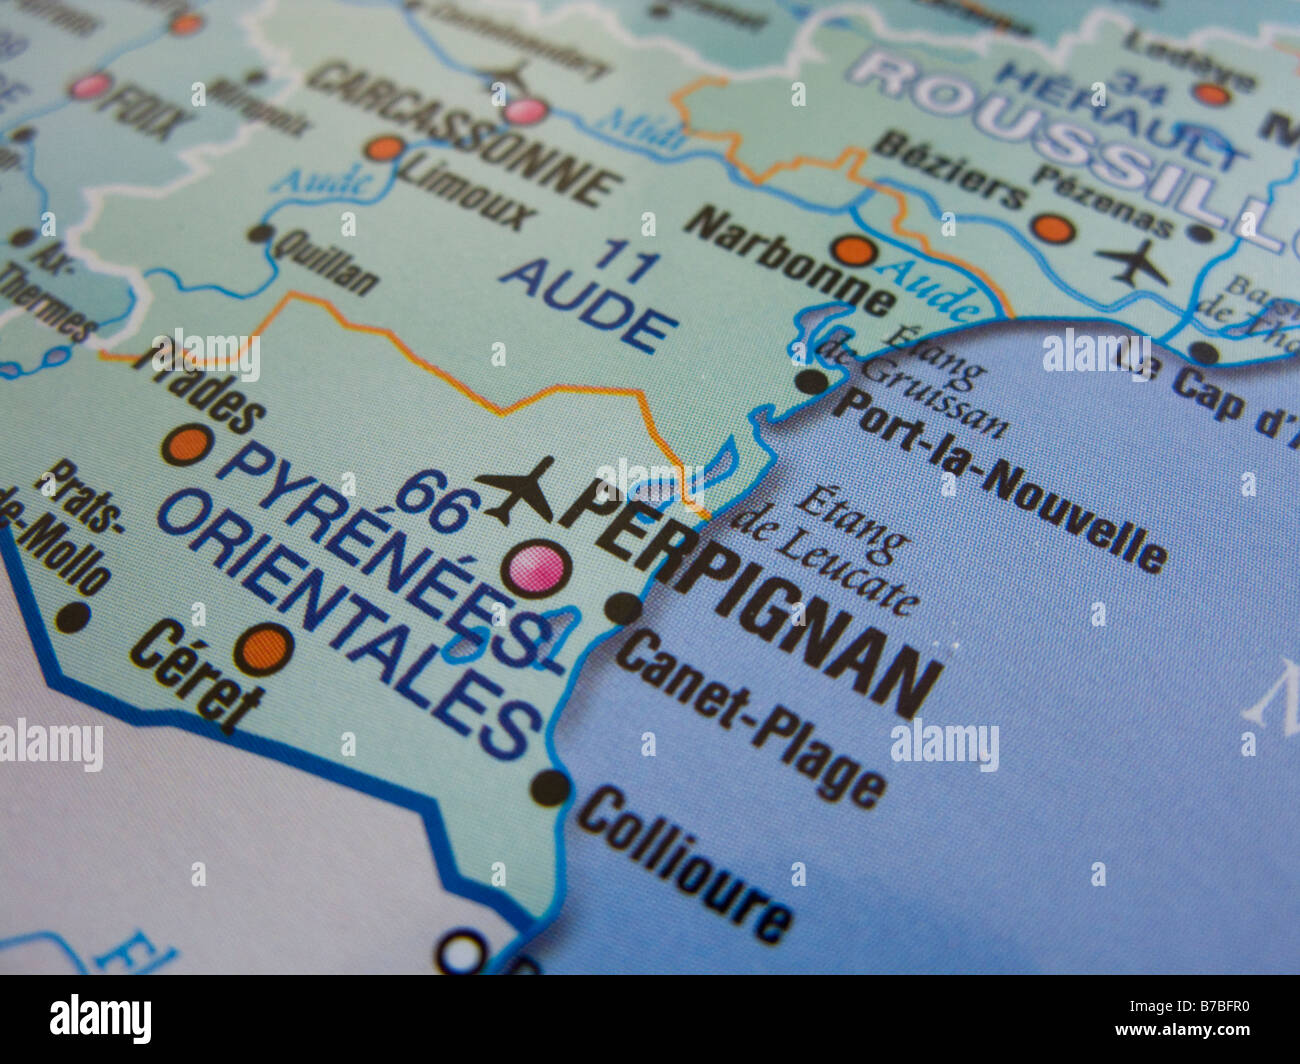 Areas Of France Map.Map Of France Showing Perpignan And Its Surrounding Areas Stock